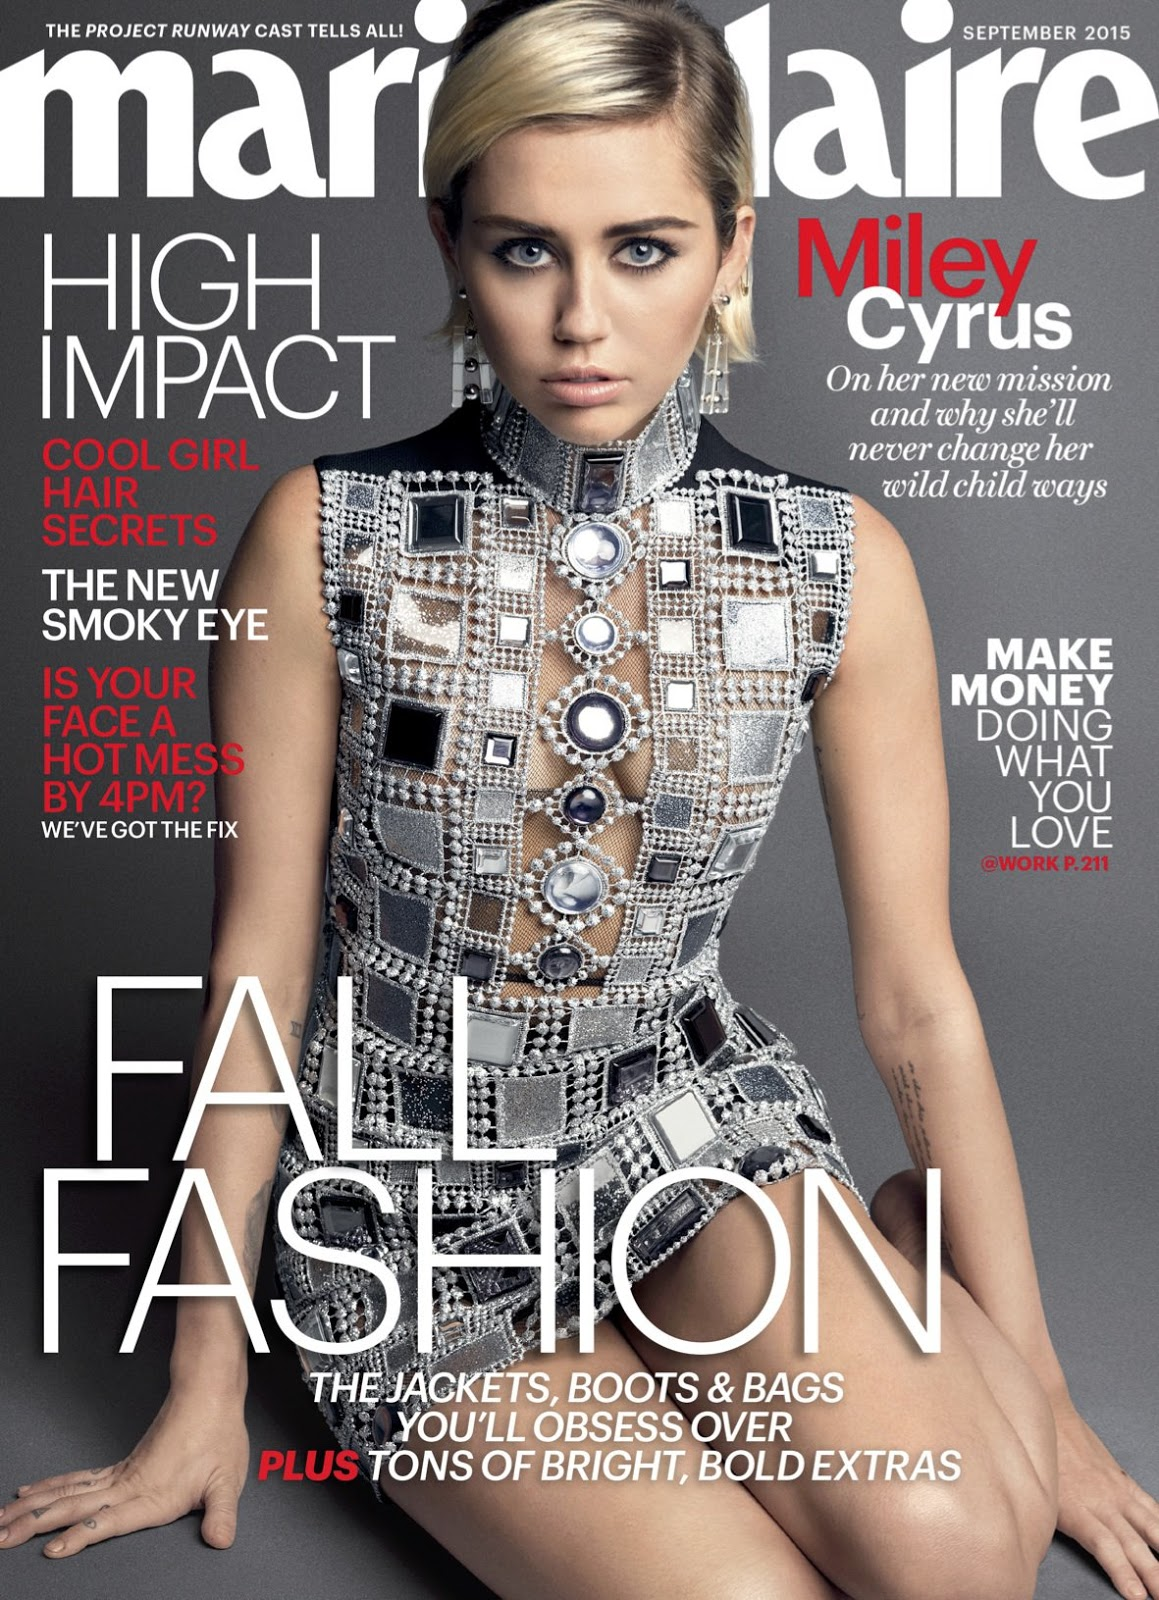 Miley Cyrus flashes skin for the Marie Claire US September 2015, thrashes Taylor Swift